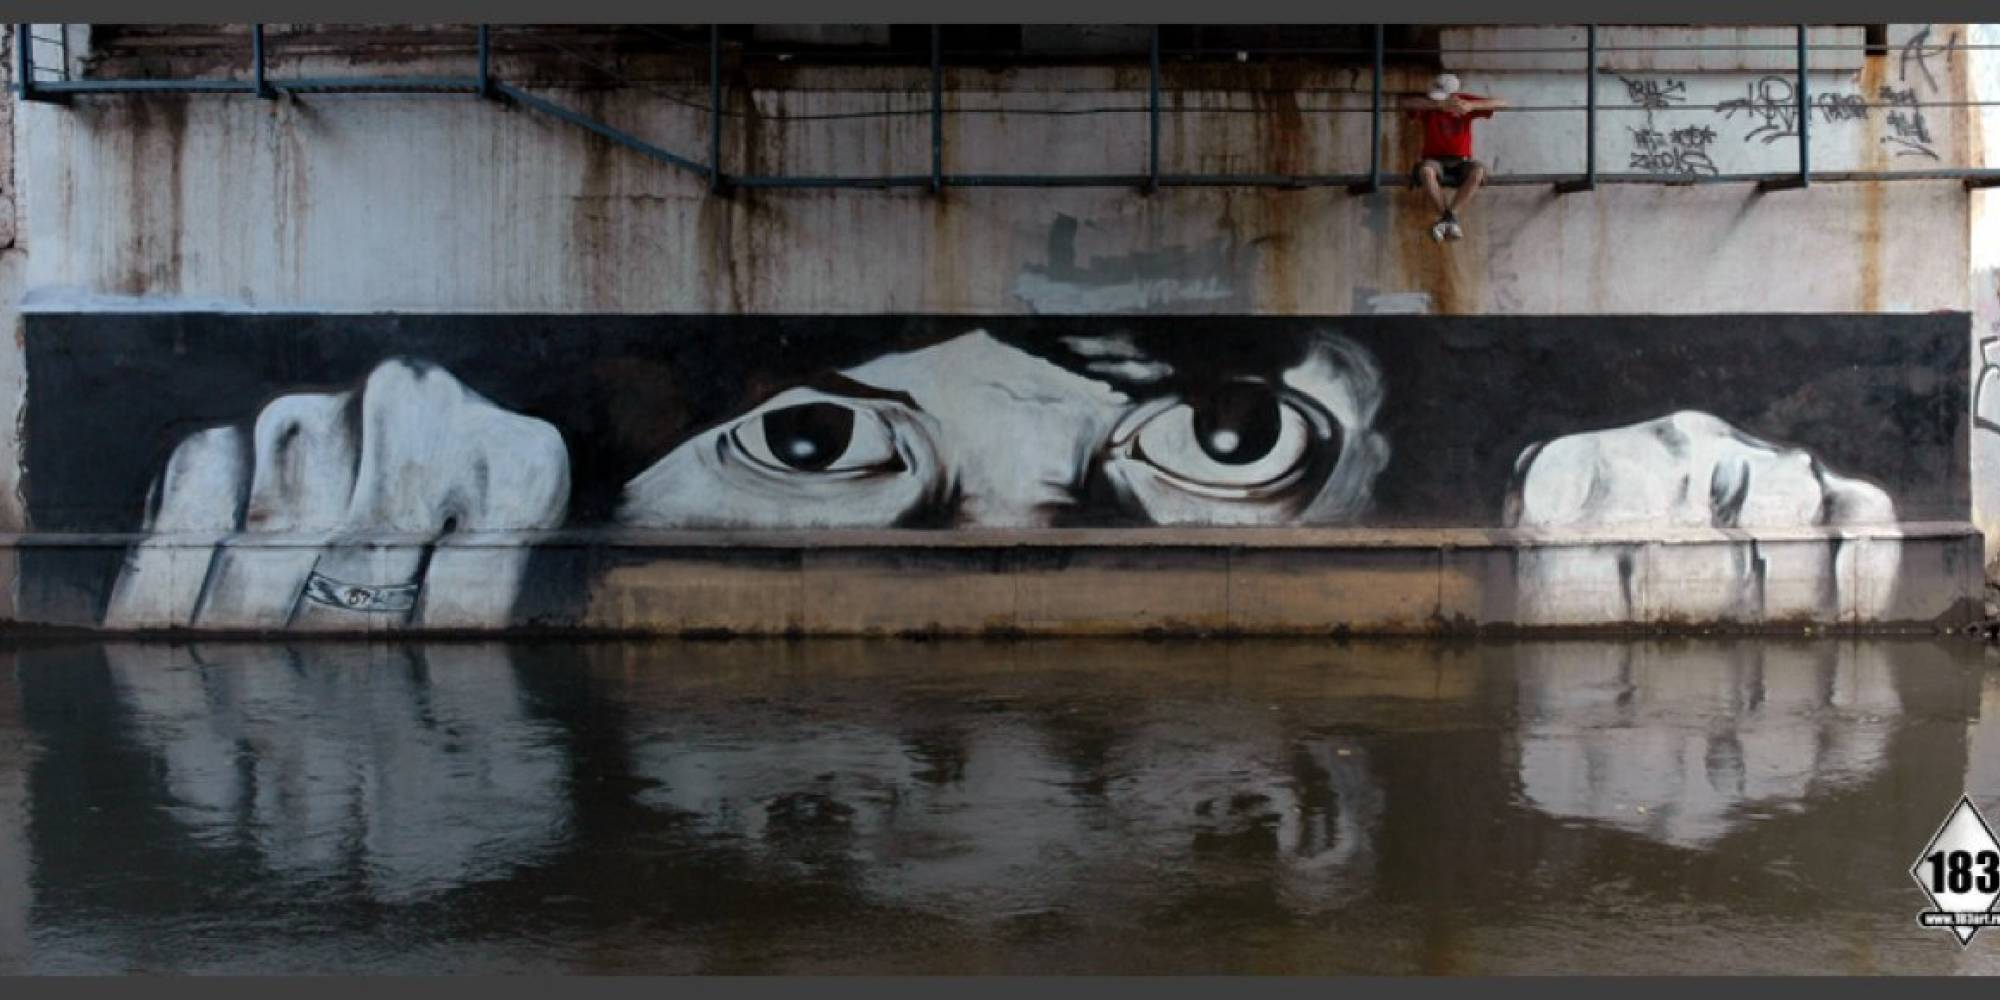 Street art showing water levels; P183. 183art.ru